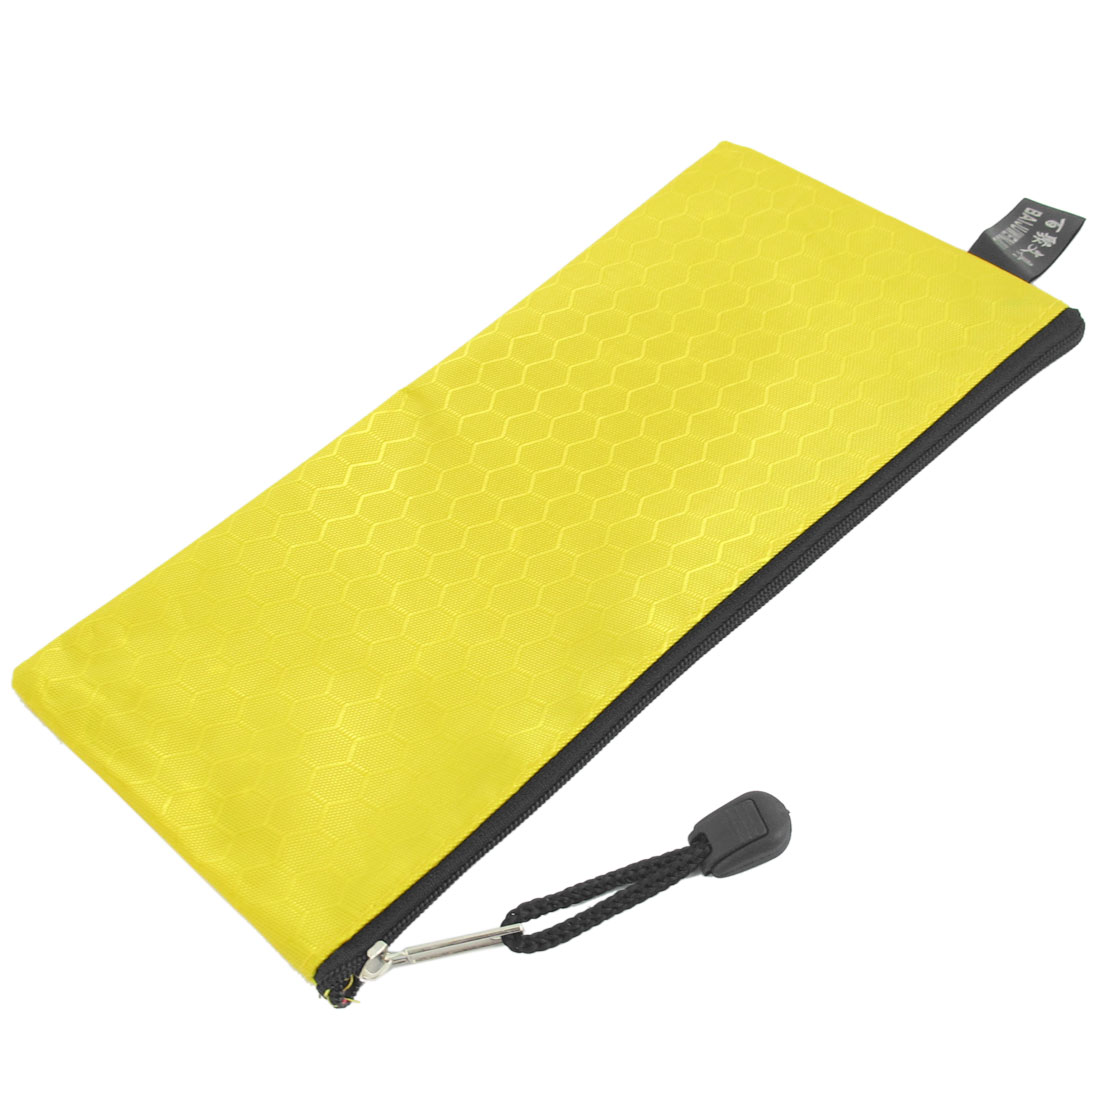 PVC Canvas Zippered Hex Pattern Paper Invoice Pen Bag Tool Holder Yellow